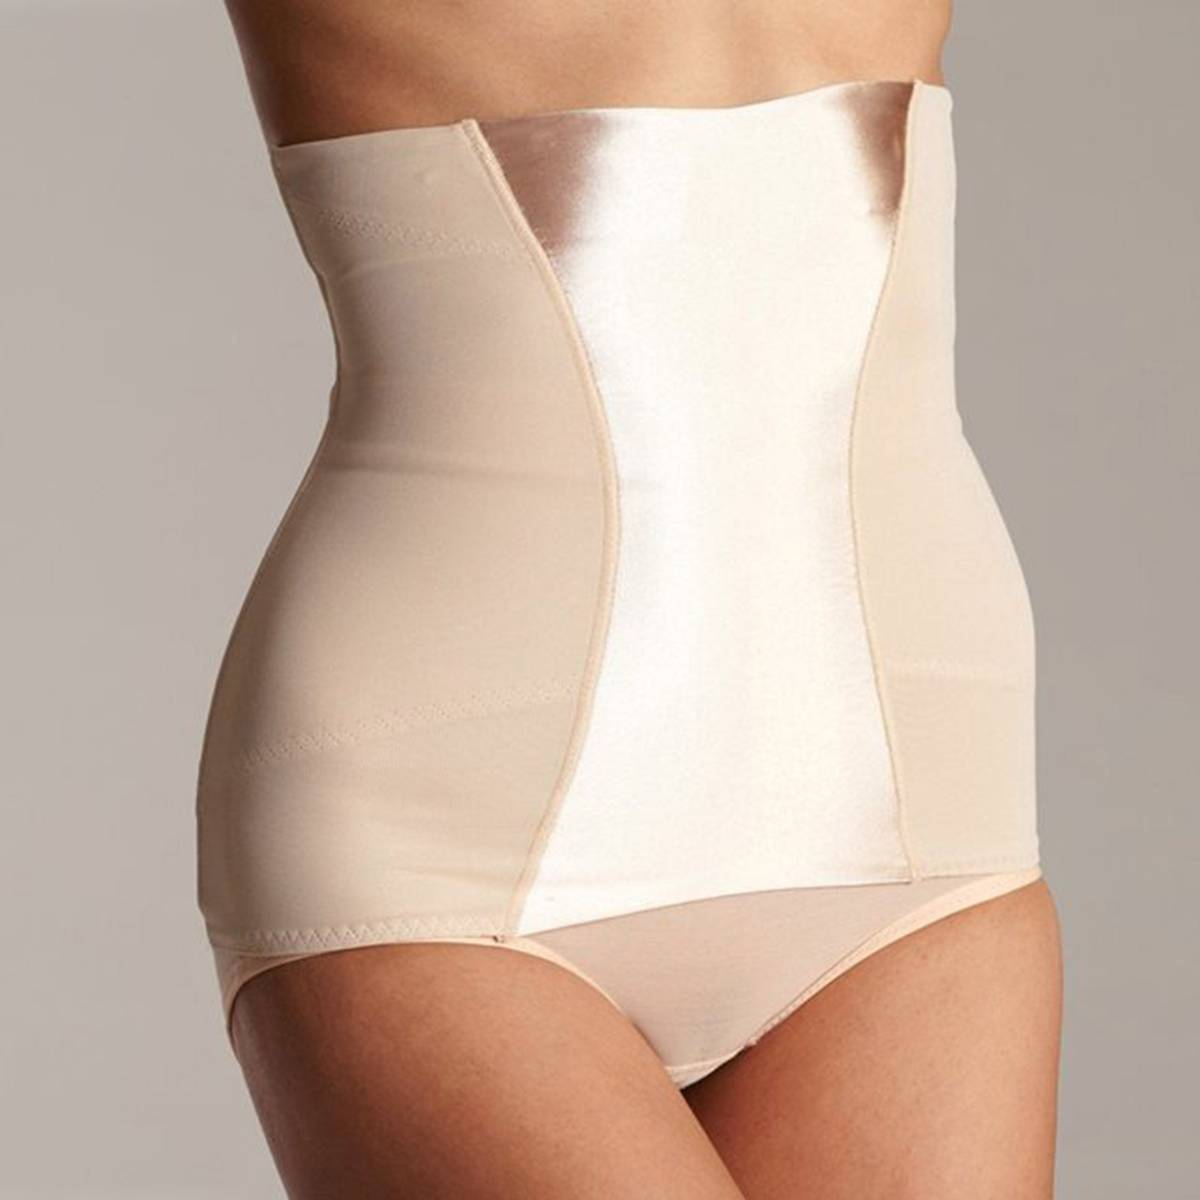 MAIDENFORM Ceñidor de cintura moldeador EASY UP PULL ON de MAIDENFORM beige